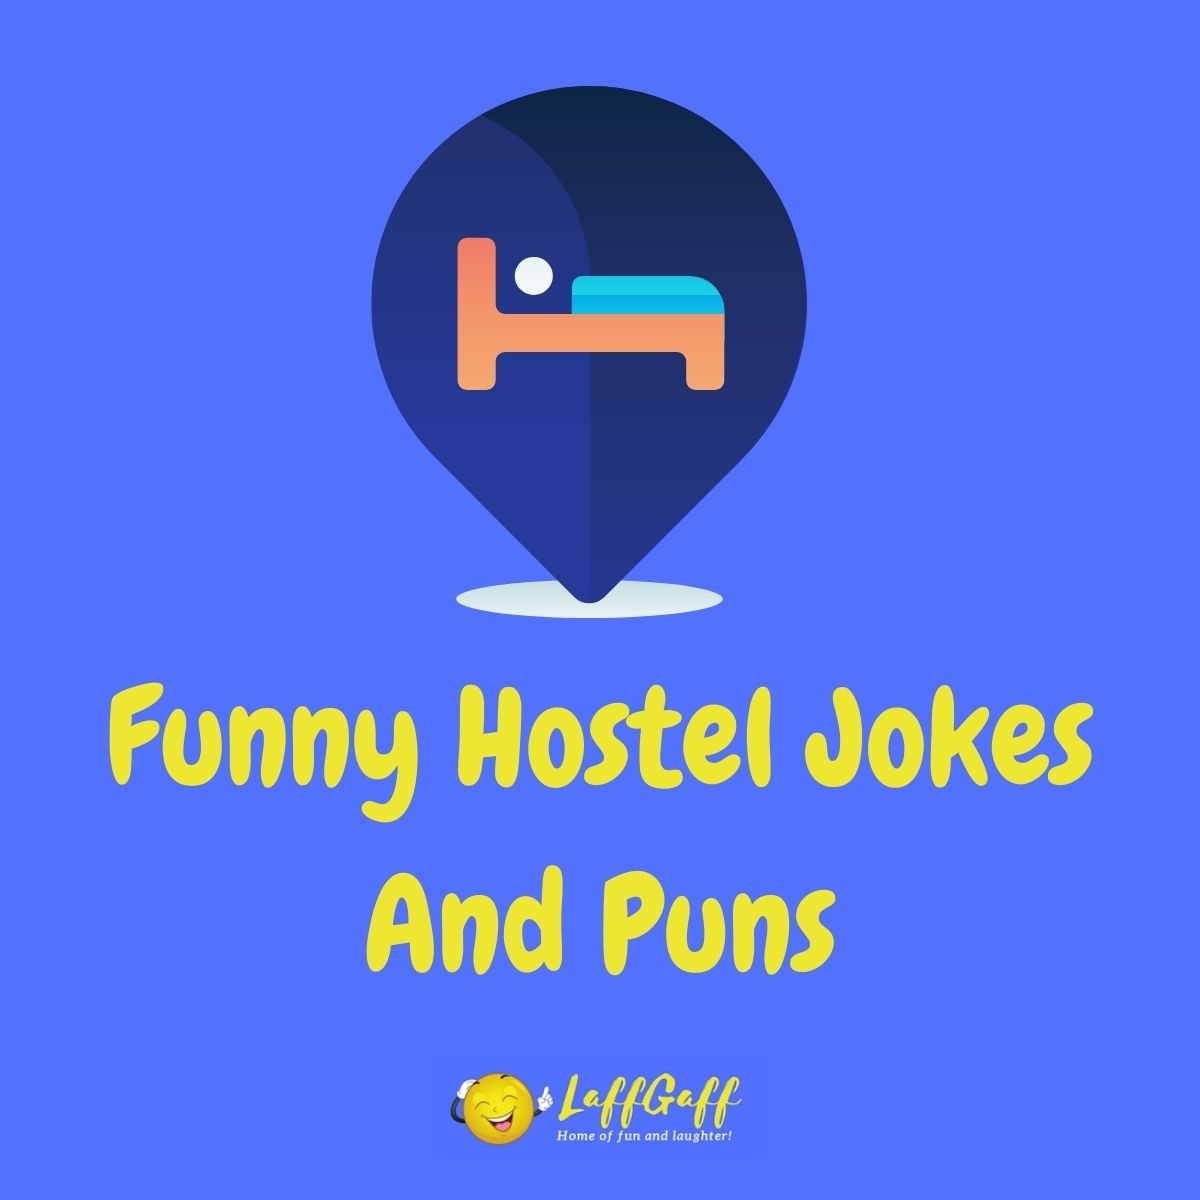 Featured image for a page of funny hostel jokes and puns.